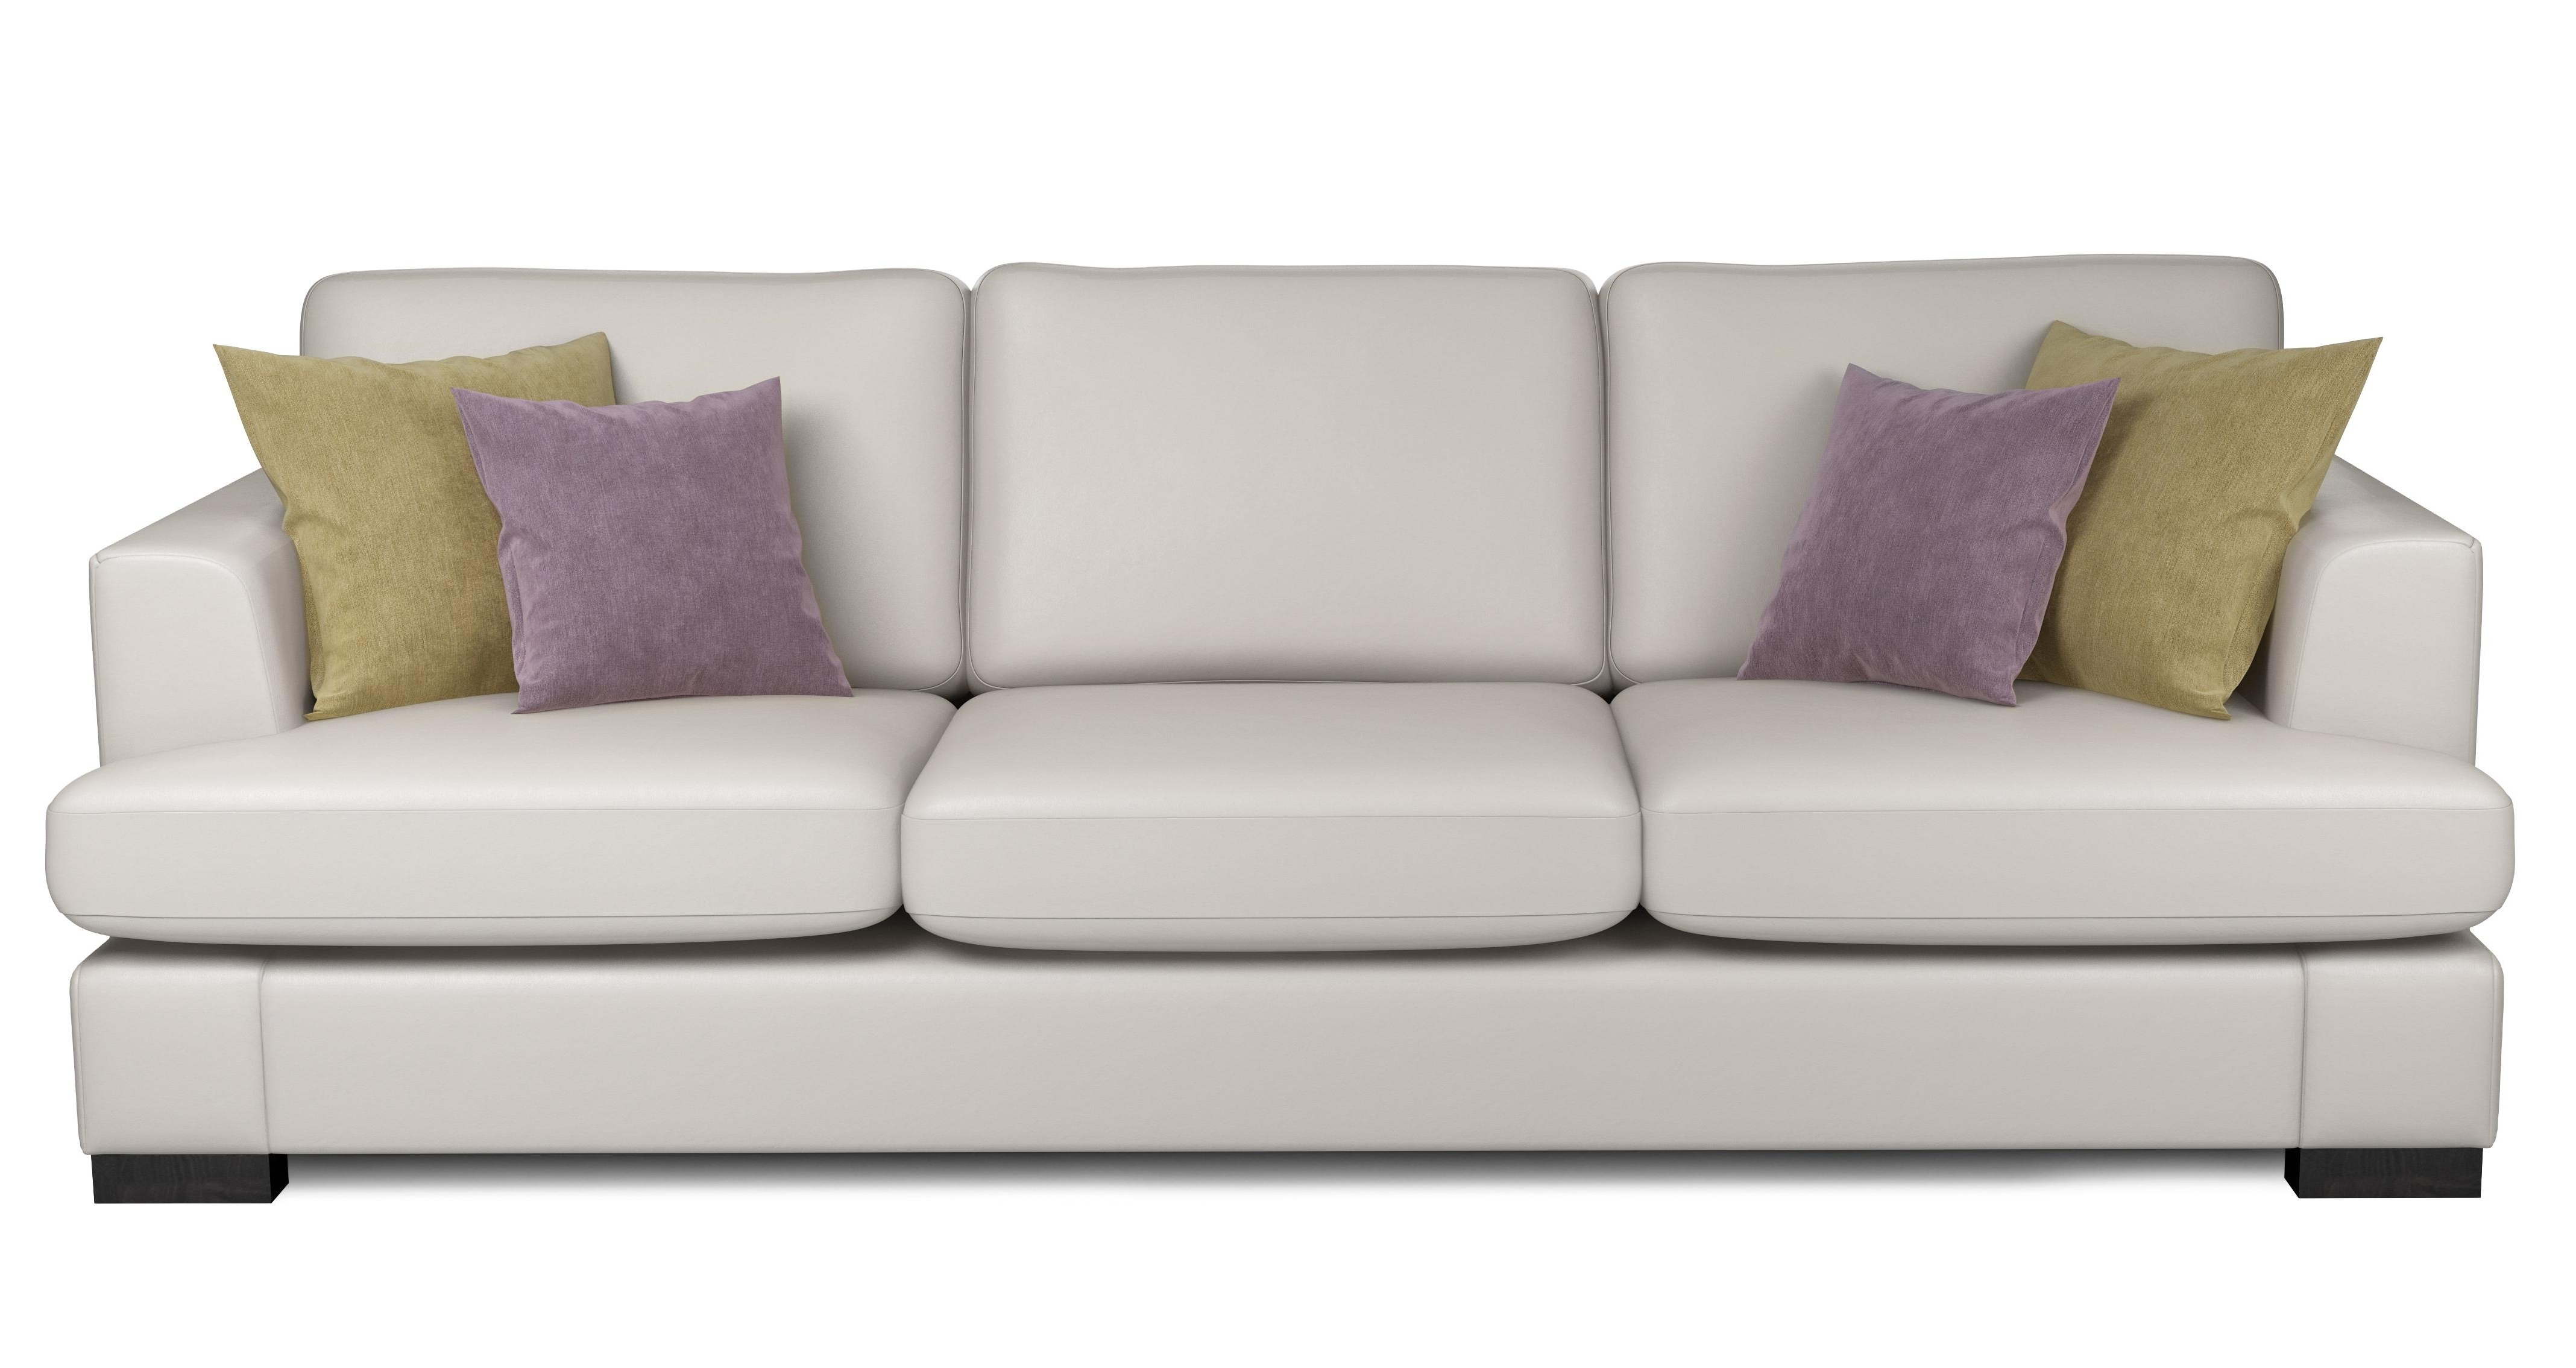 4 Seat Leather Sofas In Well Liked 4 Seater Leather Sofa – Home And Textiles (Gallery 6 of 20)